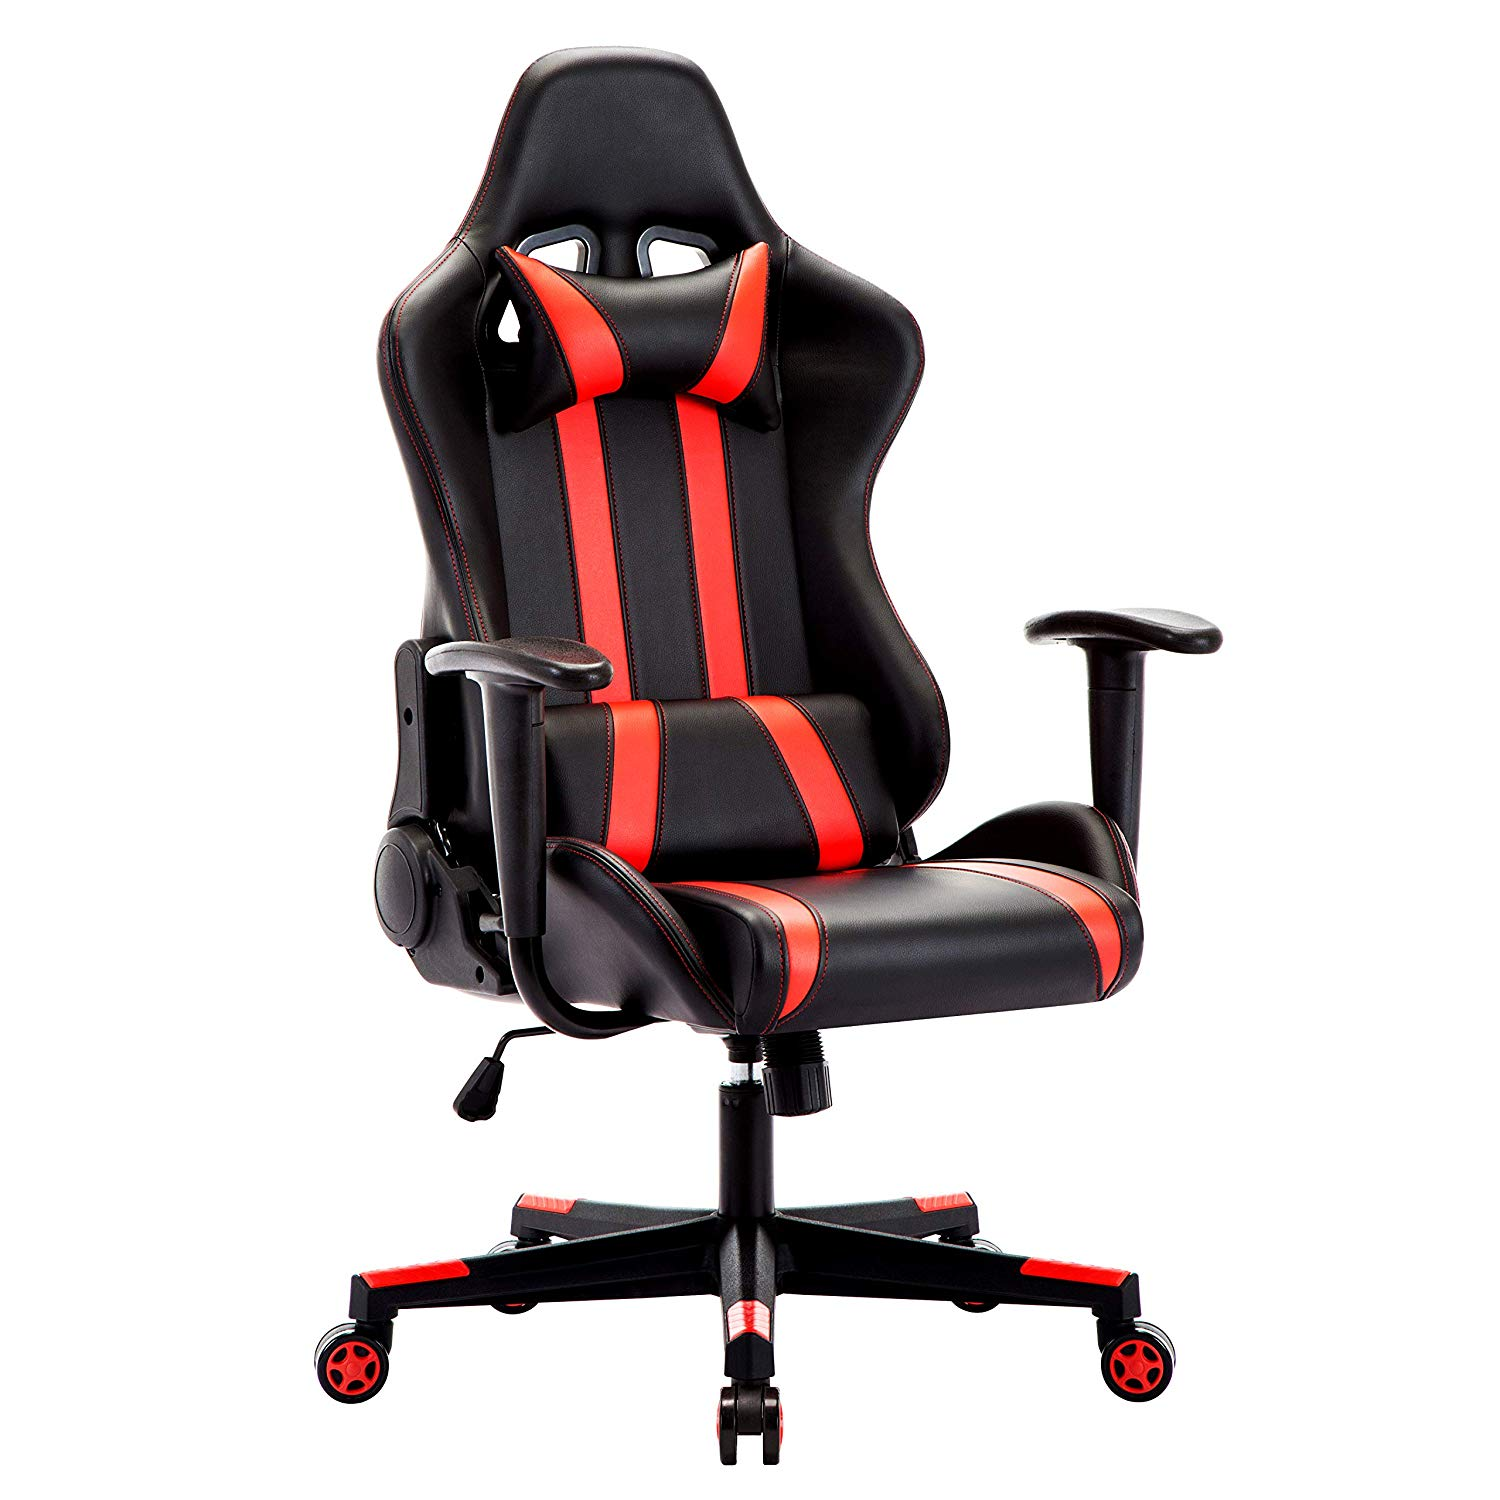 intimate-wm-heart-racing-executive-chair-computer-chair-pu-gaming-chair-with-headrest-lumbar-cushion-135-degree-reclining